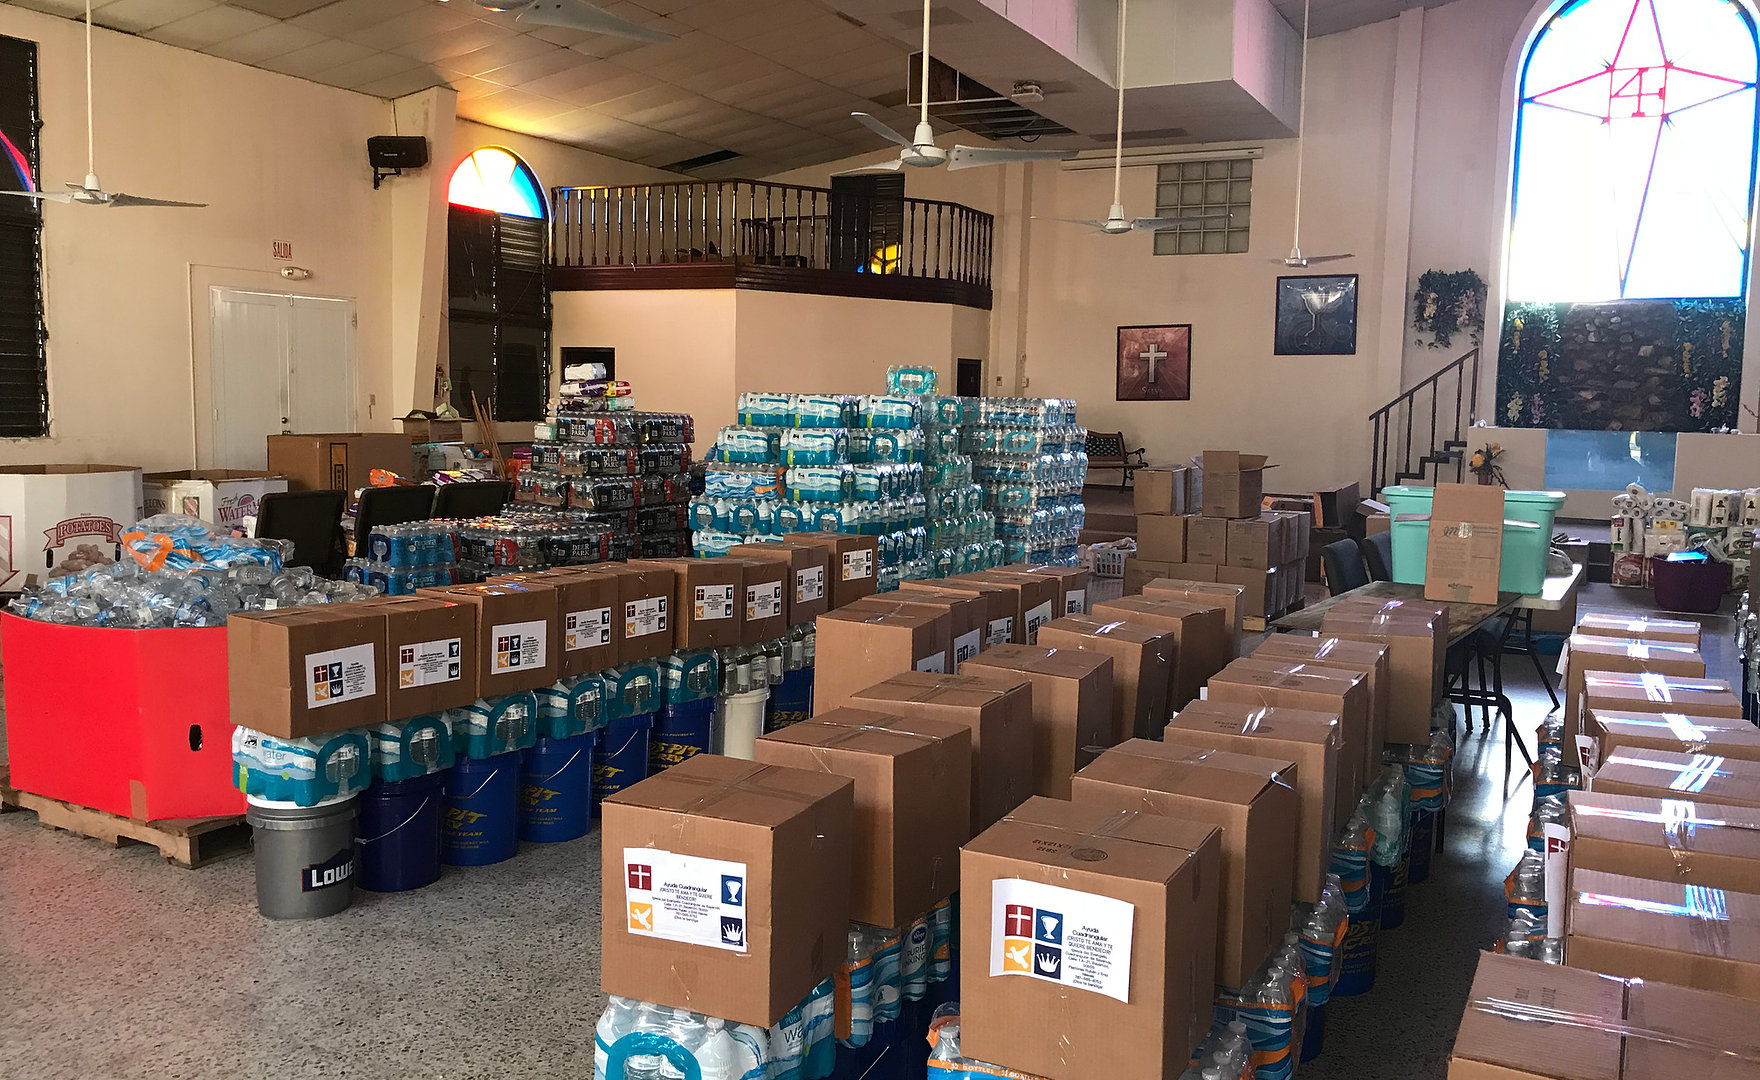 Cases of water purification filters in a church, waiting to be distributed.